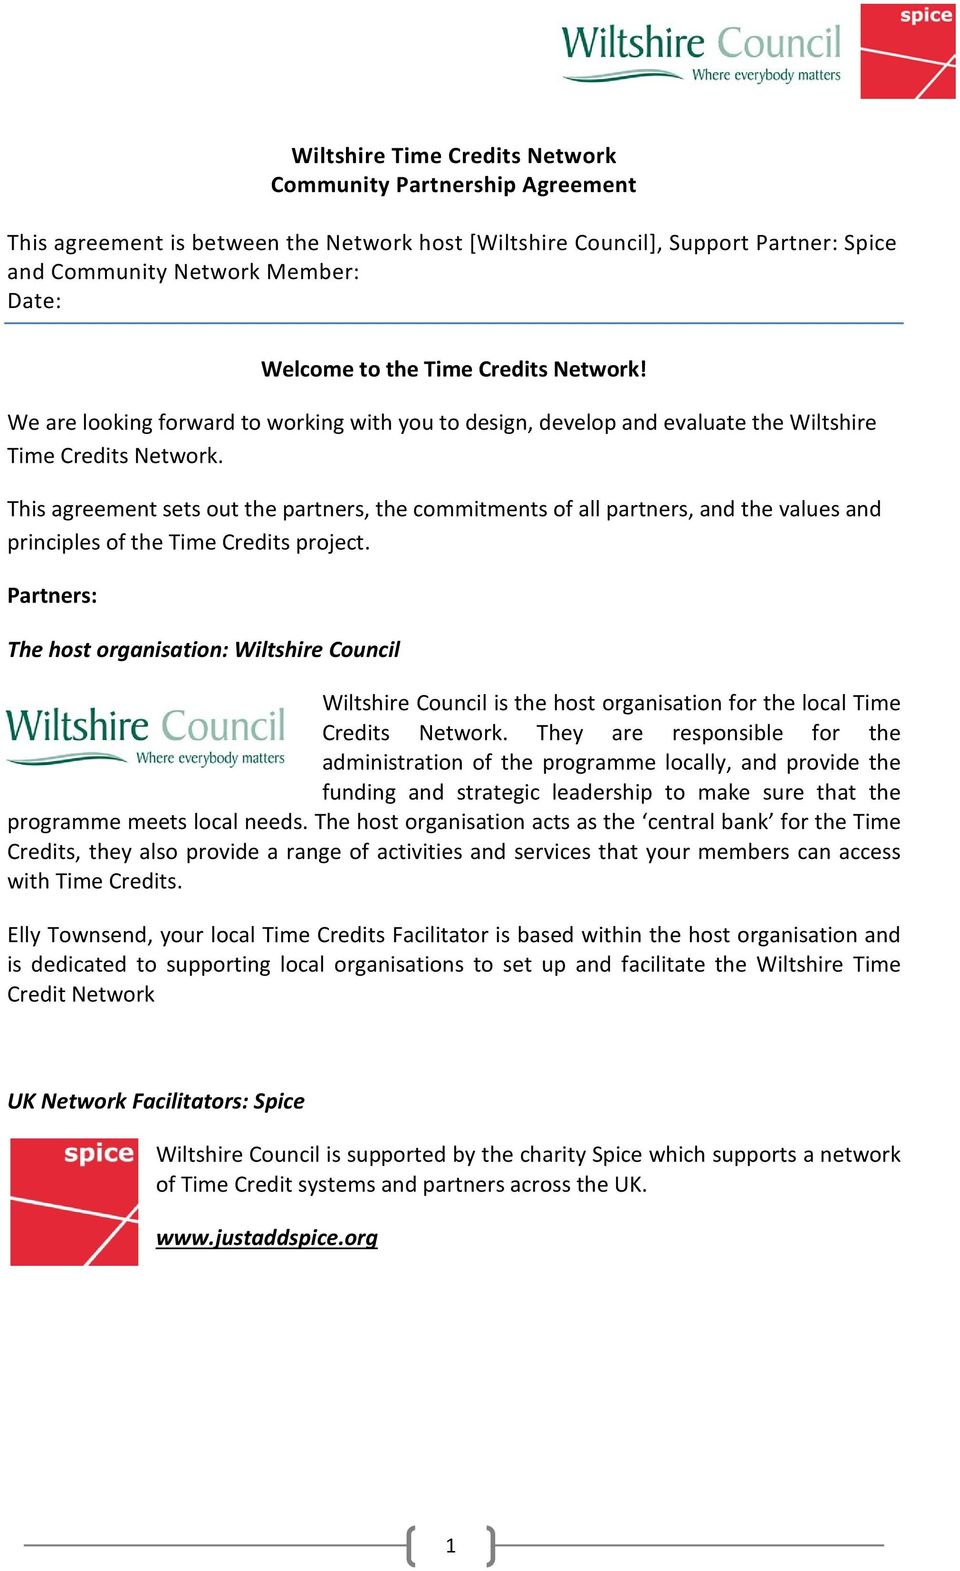 This agreement sets out the partners, the commitments of all partners, and the values and principles of the Time Credits project.